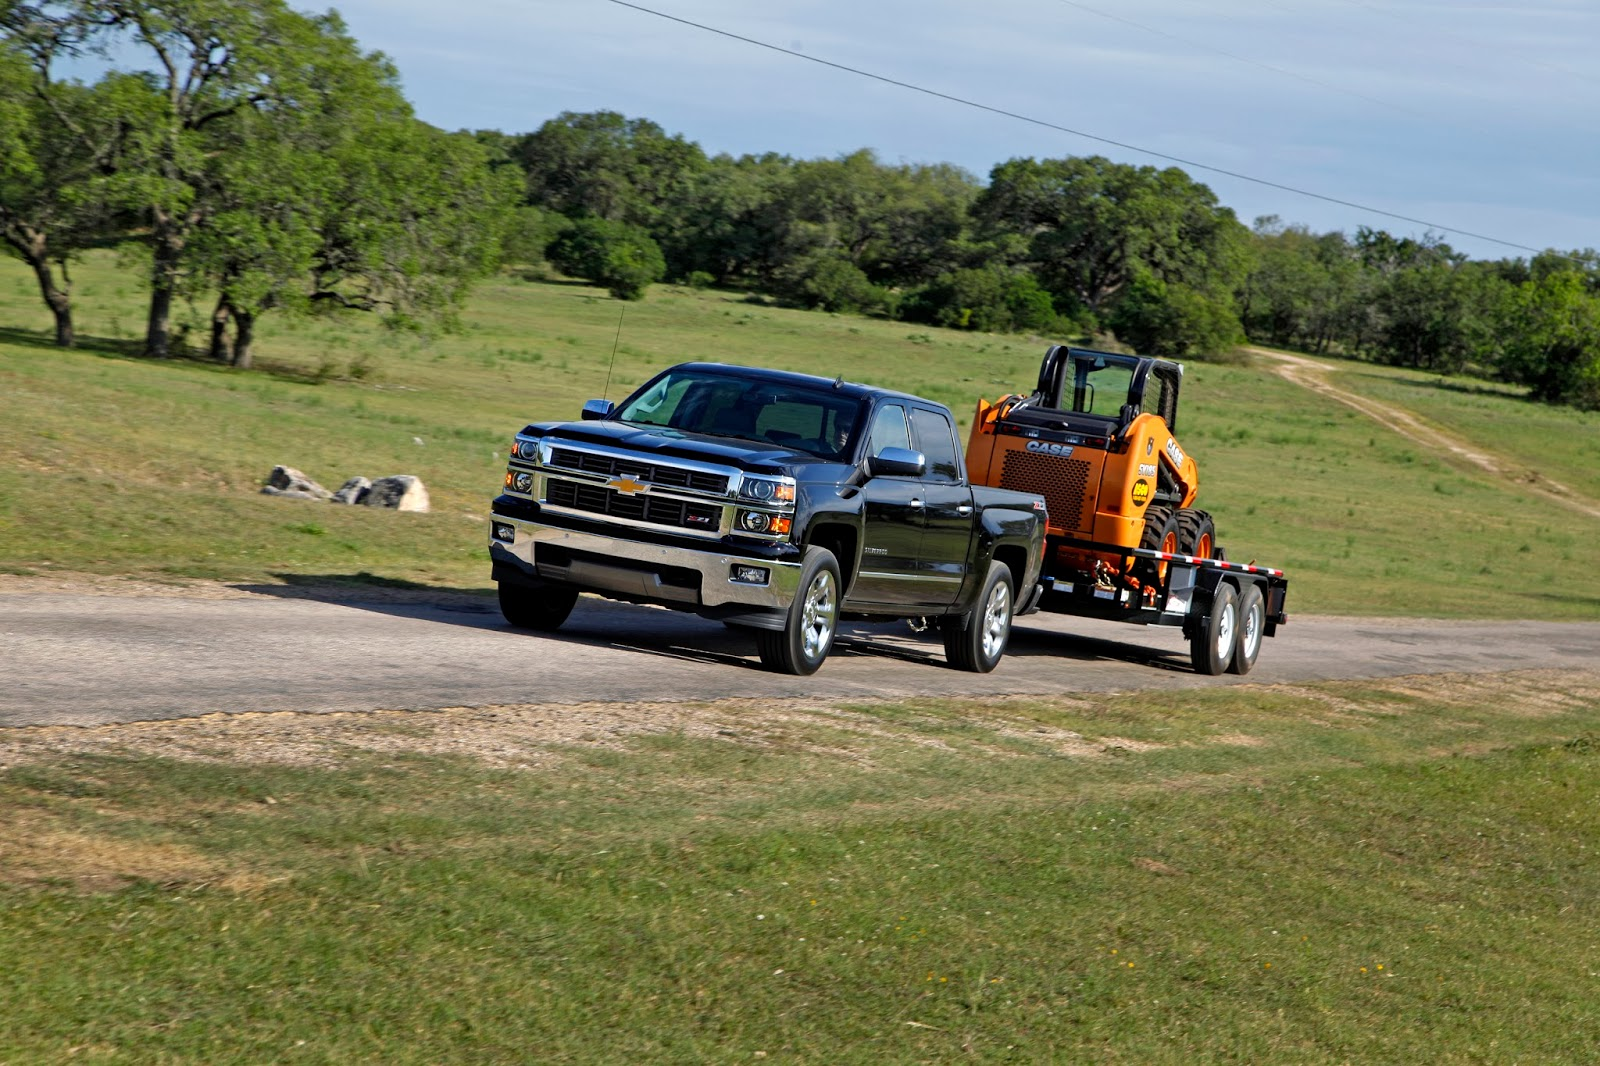 2013 Fleet Truck of the Year: Chevy Silverado 1500